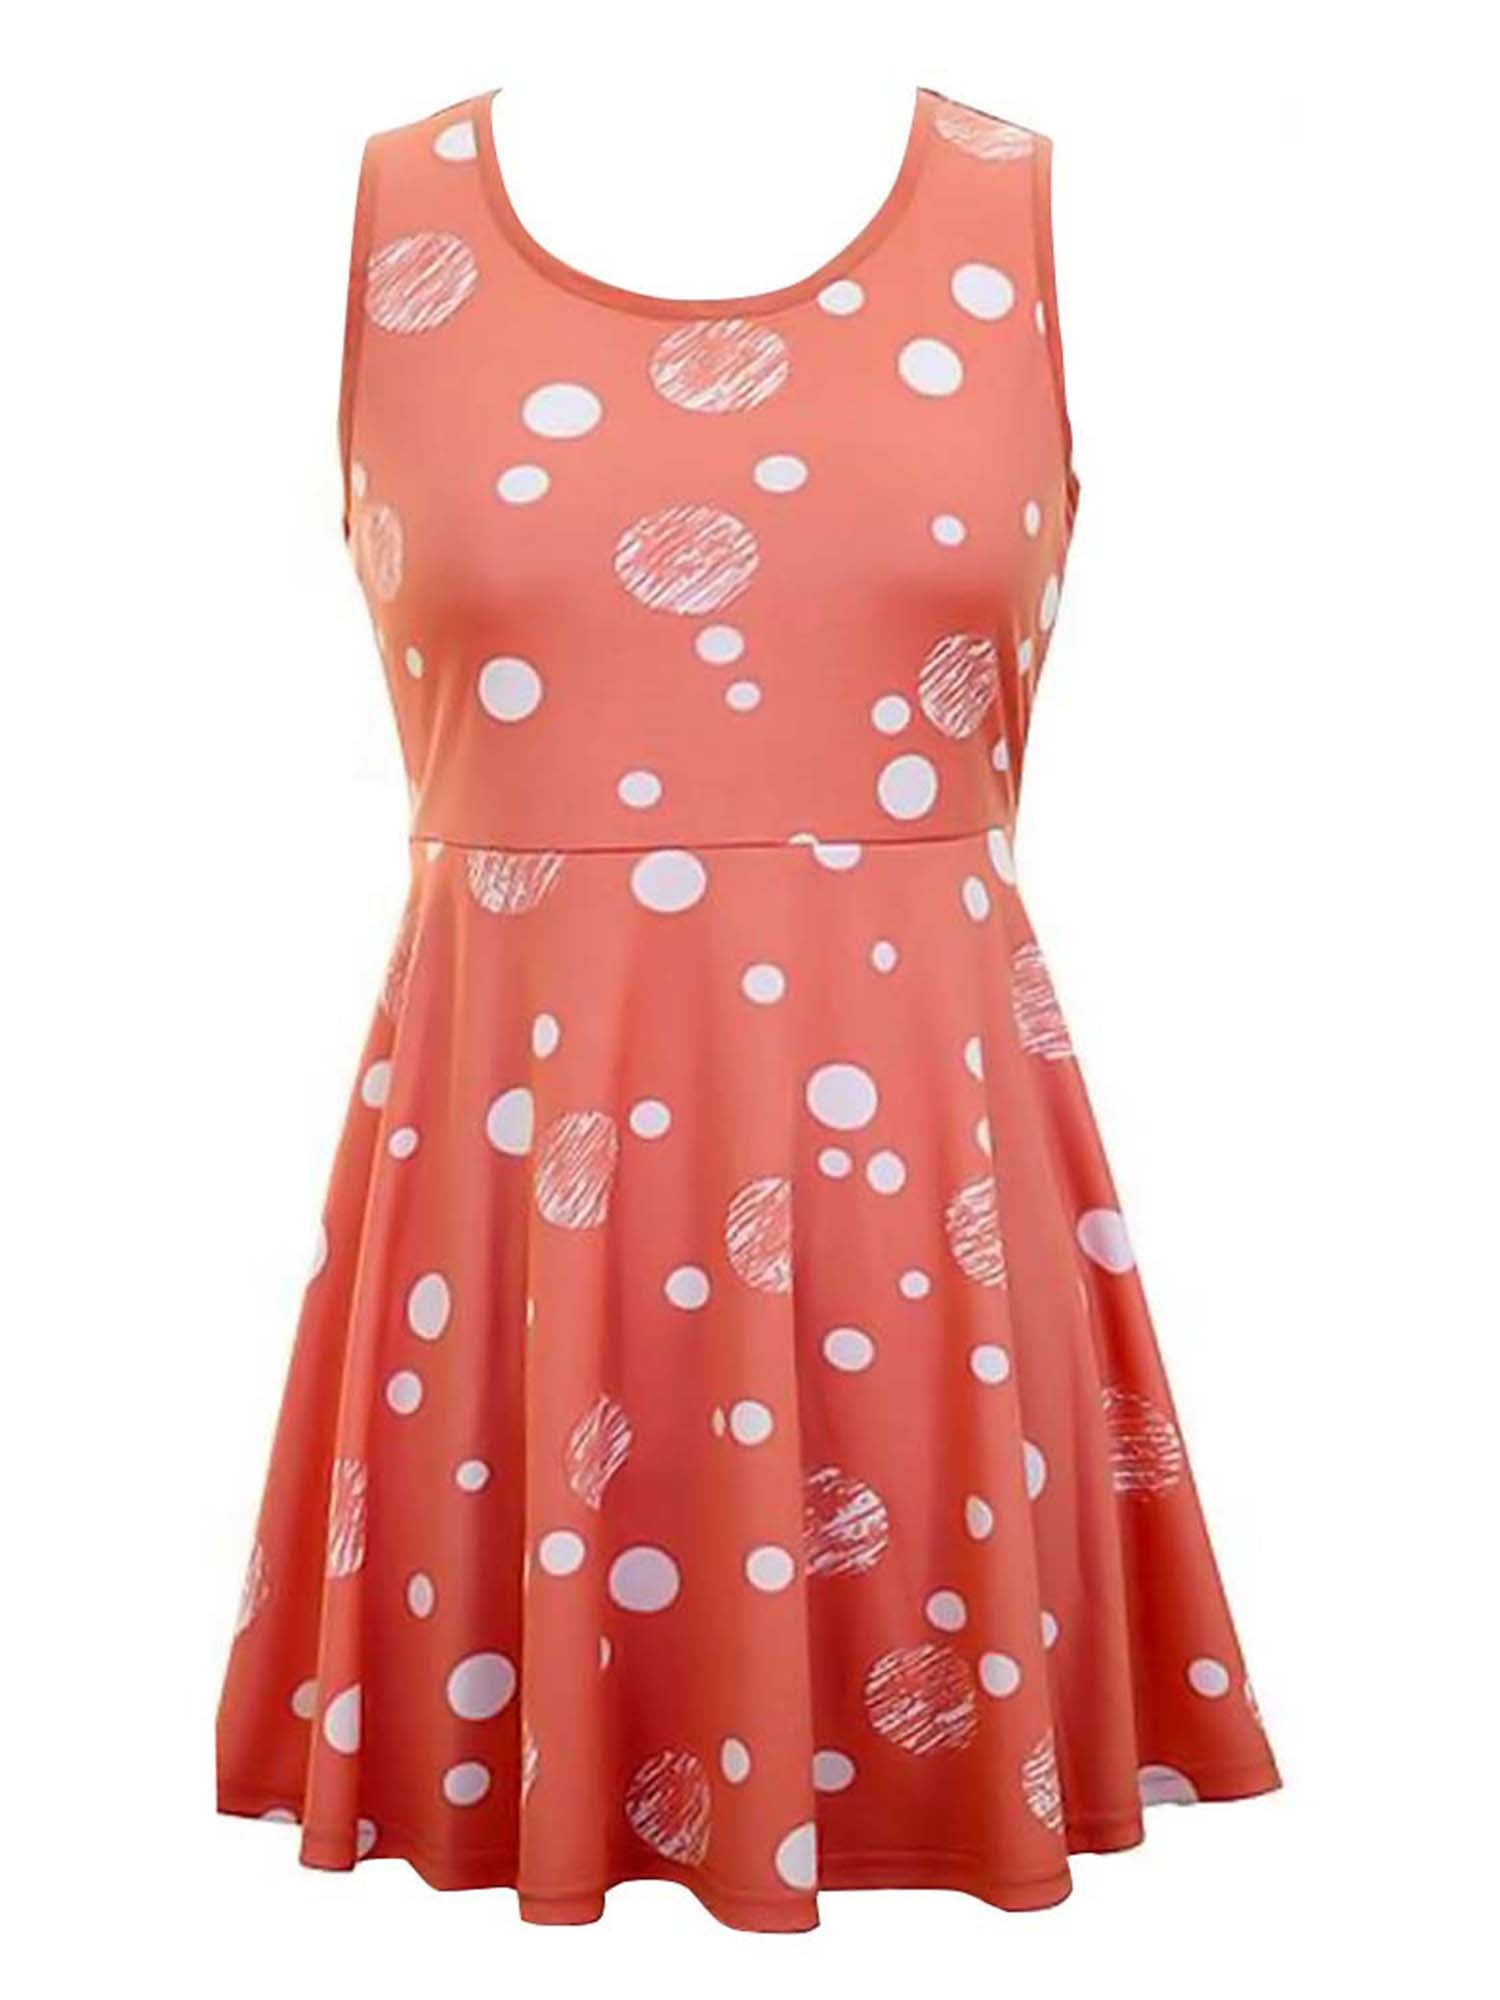 Sleeveless Polka Dot Skater Dress With Empire Waist